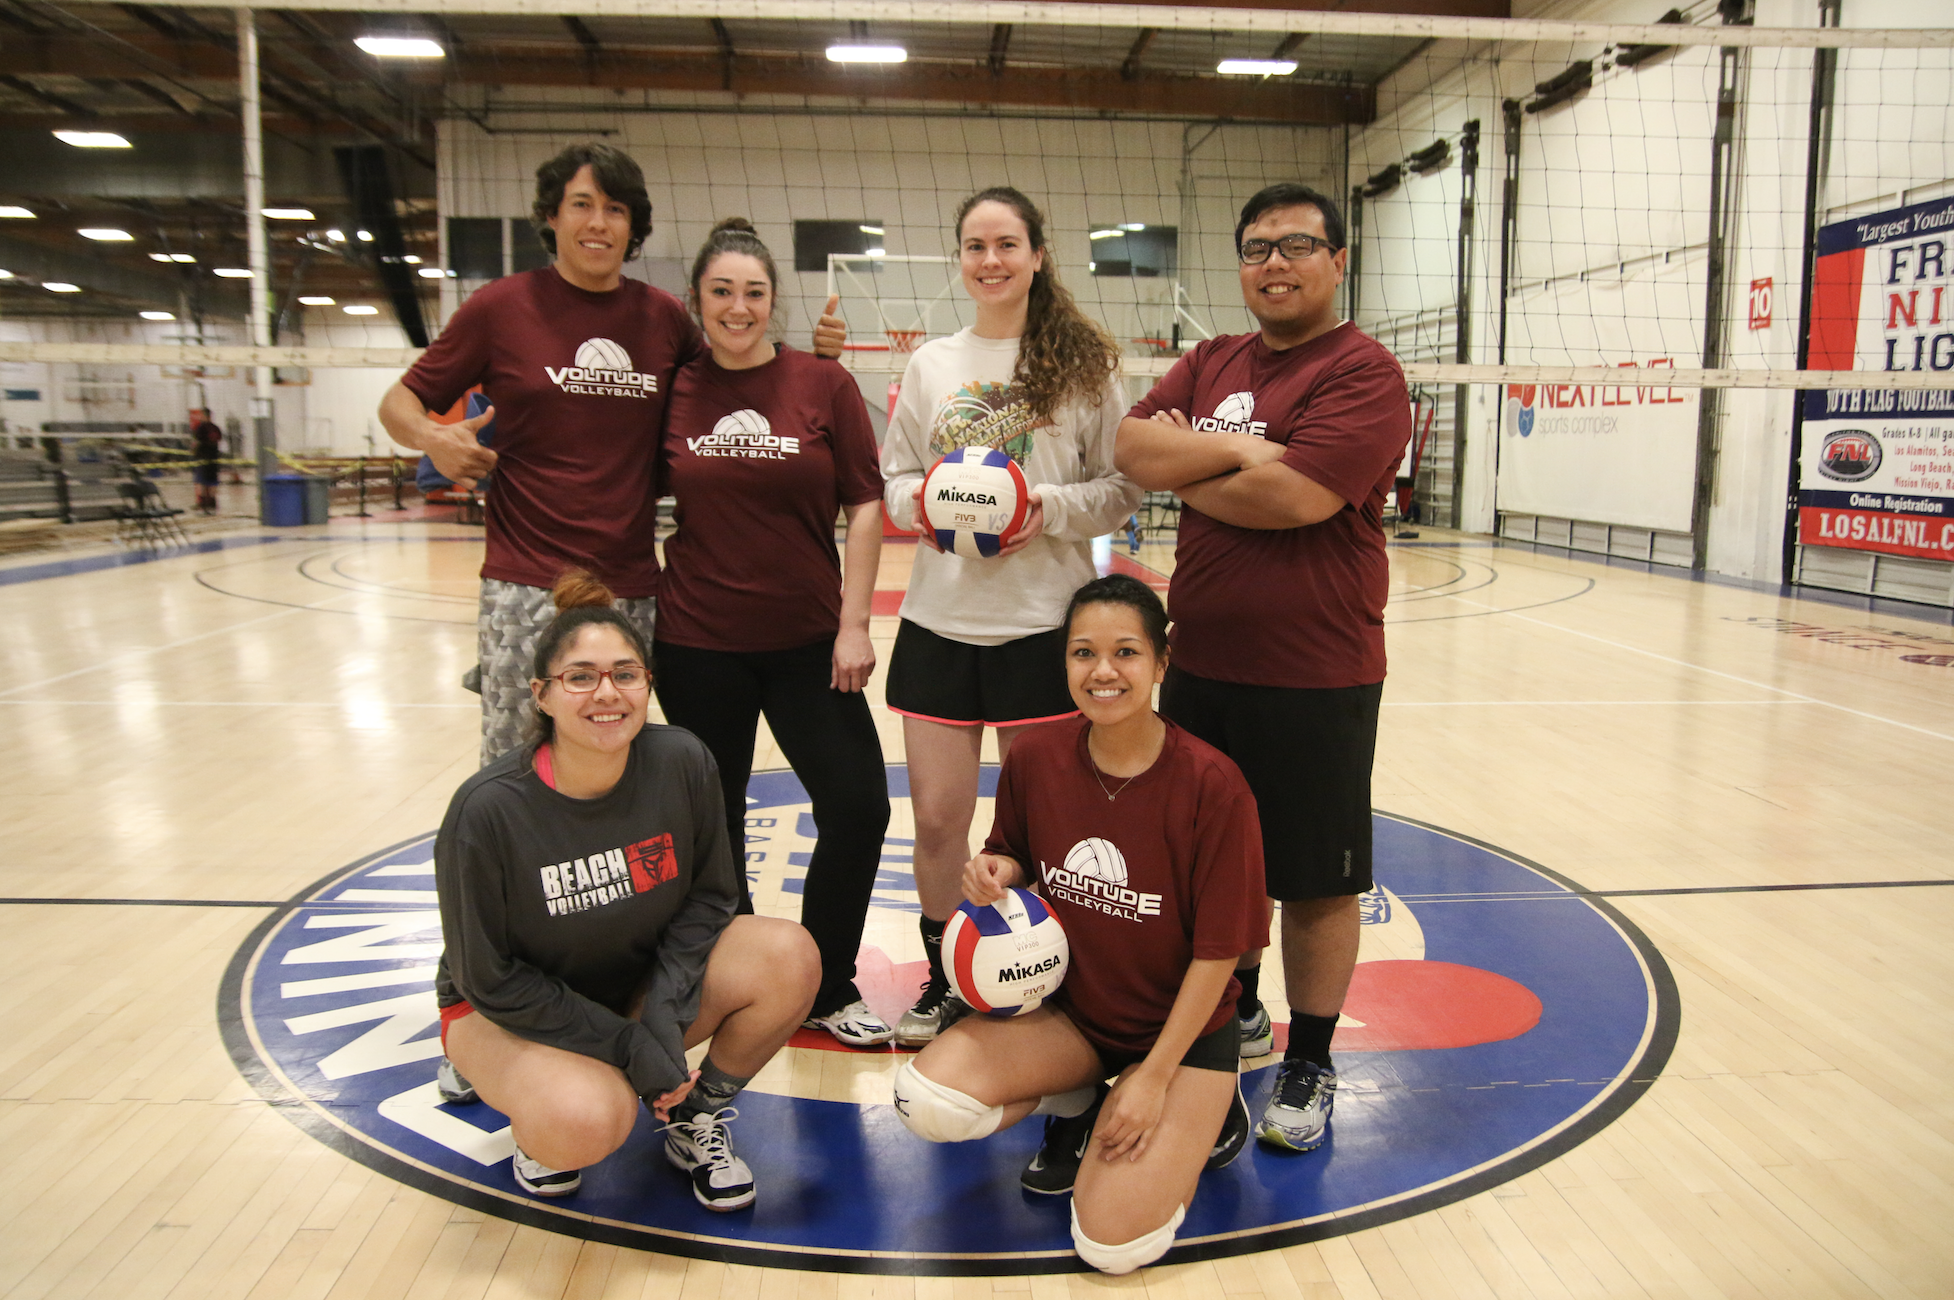 Garden Grove Indoor Soccer Wednesday night 6v6 coed indoor volleyball league in garden grove team dri fit shirts for all players discounted fitness center membership new friends and more team referee fee 10 per week workwithnaturefo